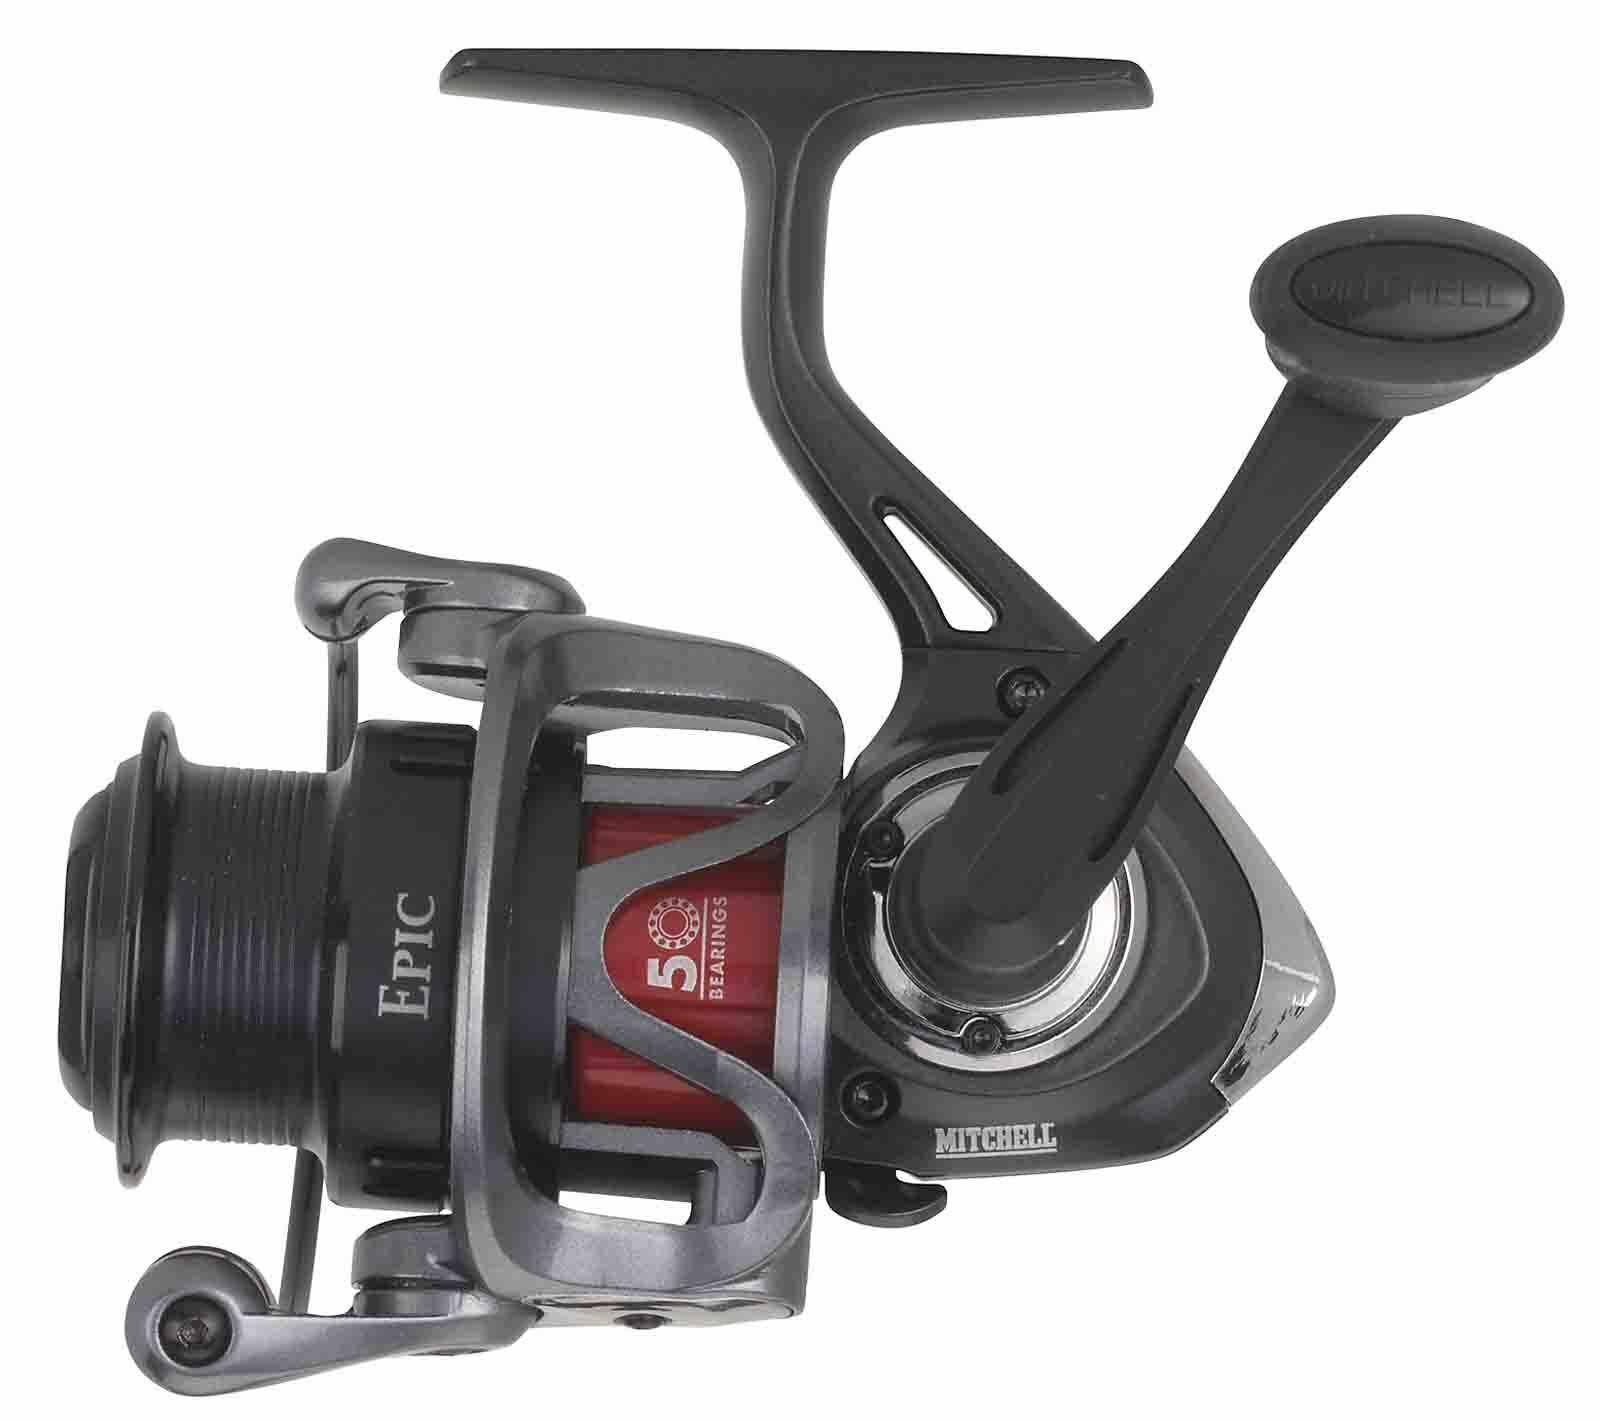 Mitchell New Spin Epic FD Spinning Fixed Spool PROTator Fishing Reel - All Größes